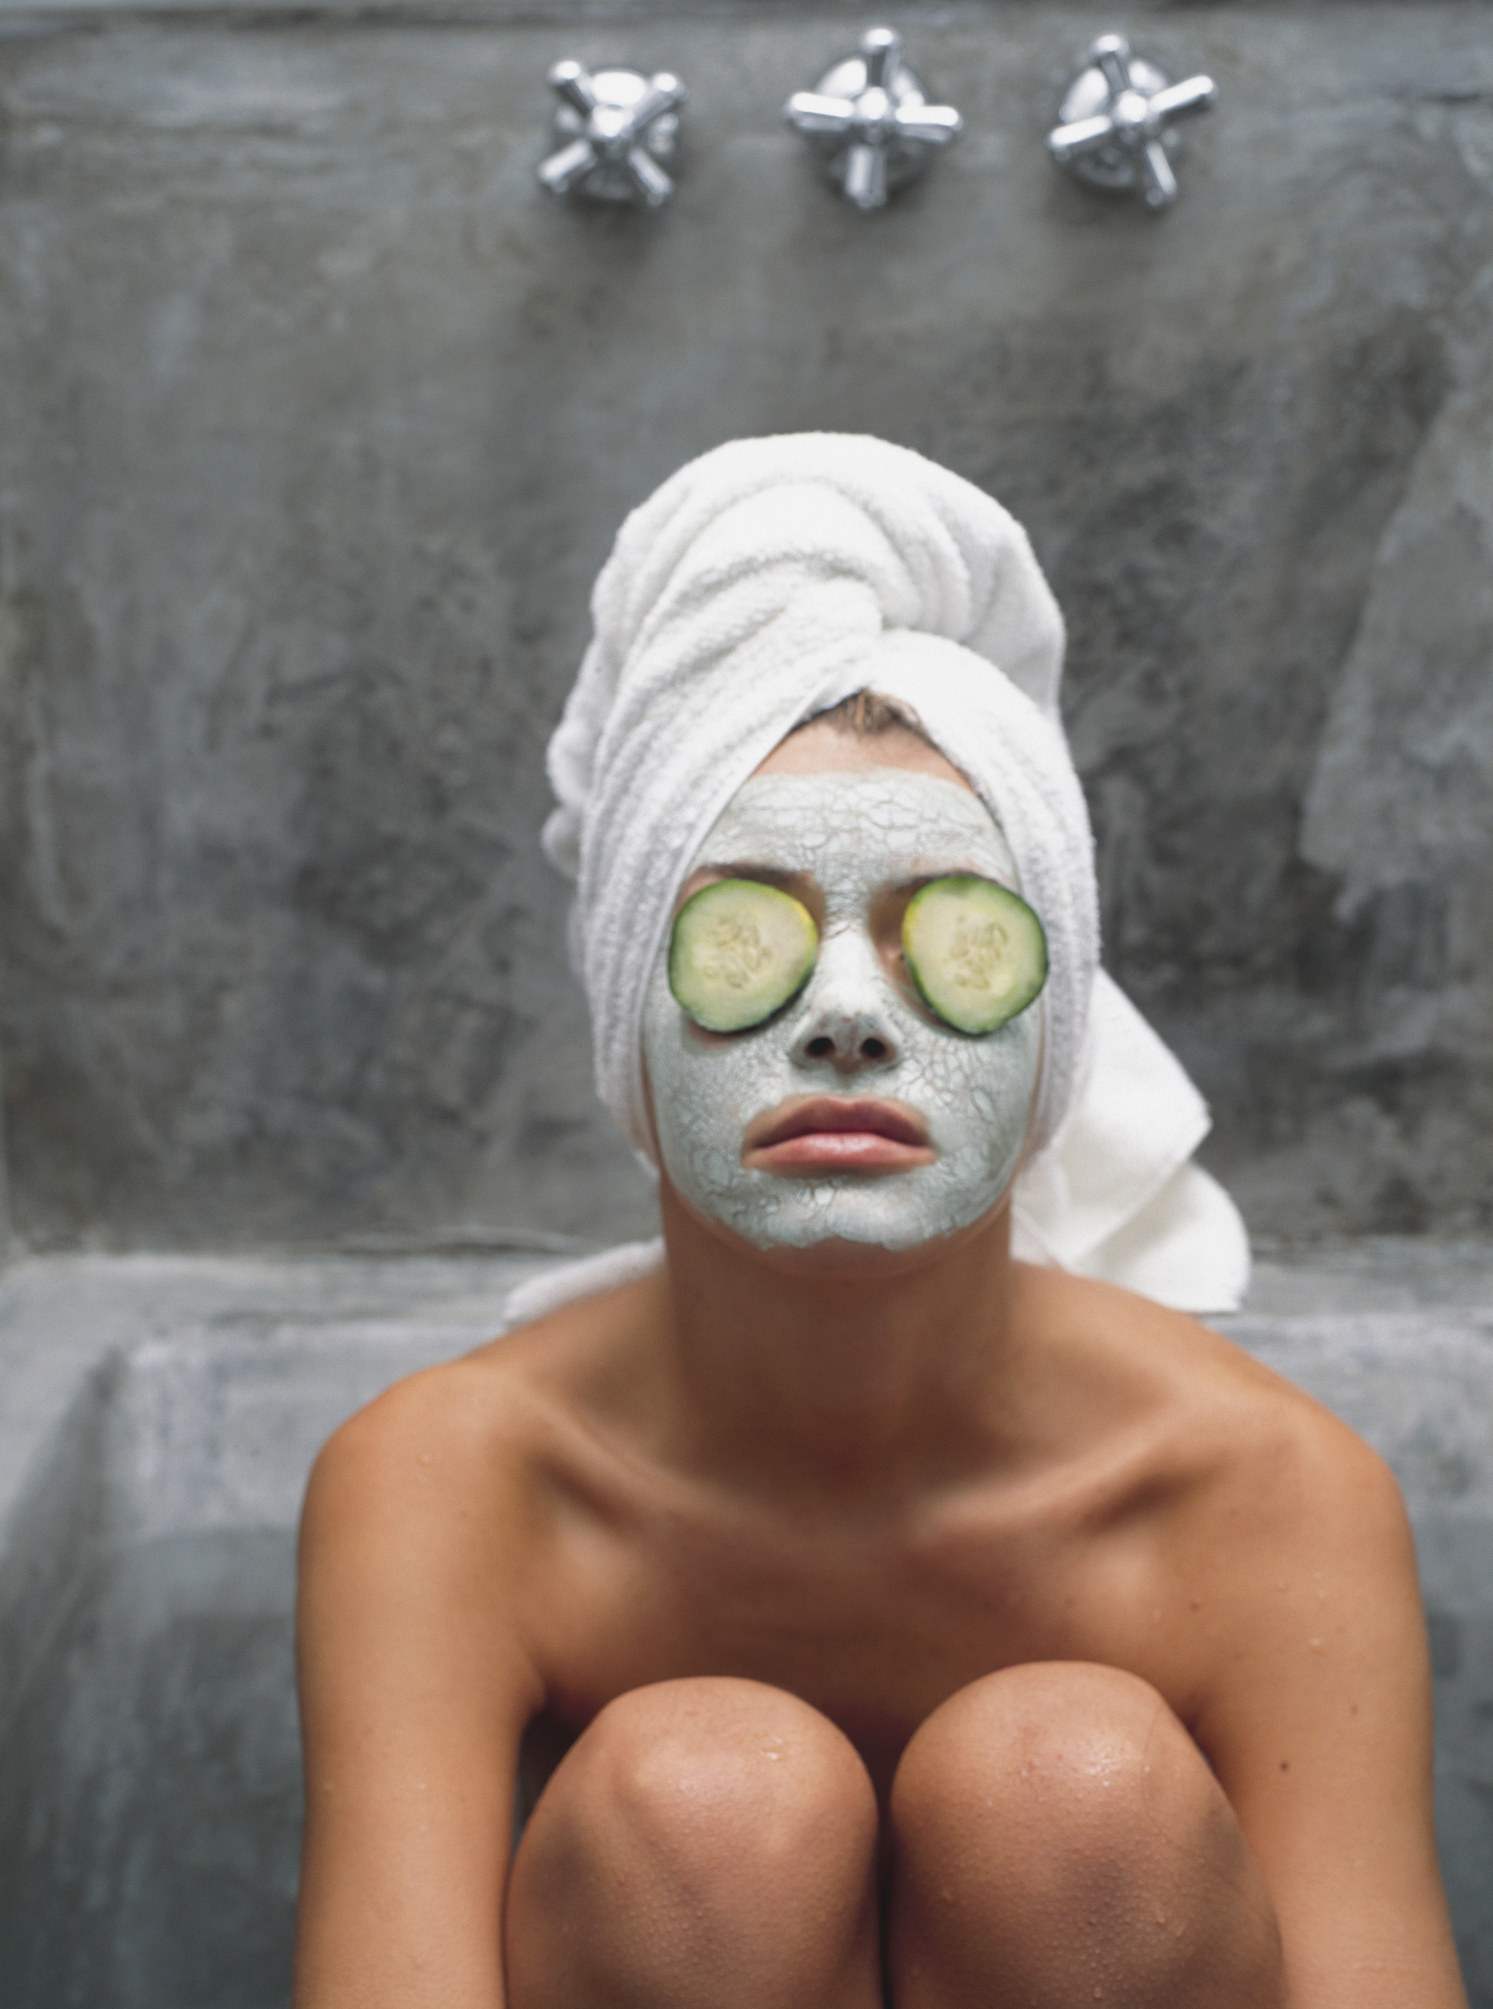 Woman sitting in a spa room with a face mask on and cucumber slices over her eyes, hair wrapped up in a towel